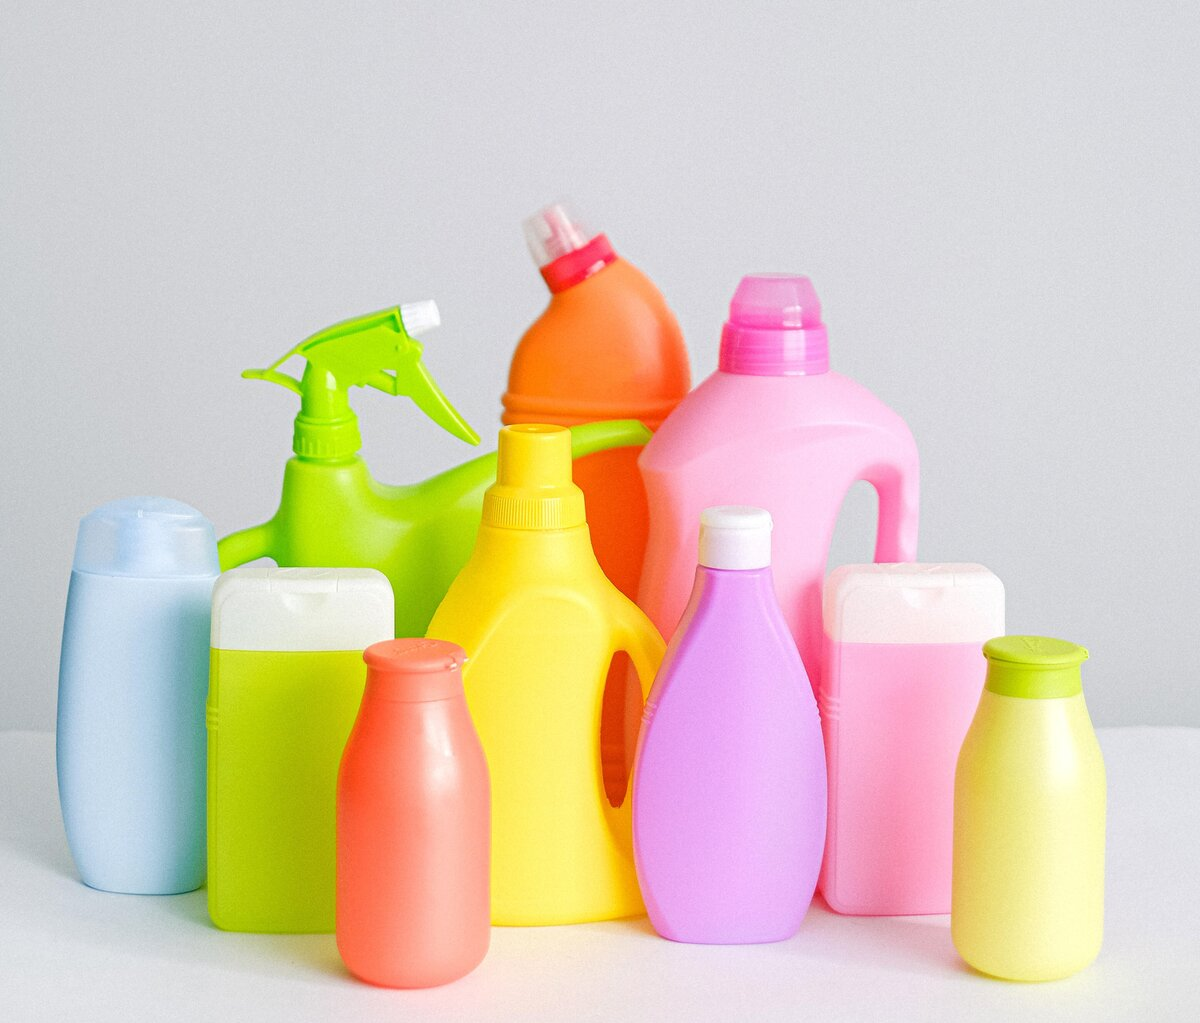 A selection of brightly coloured plastic cleaning fluid containers